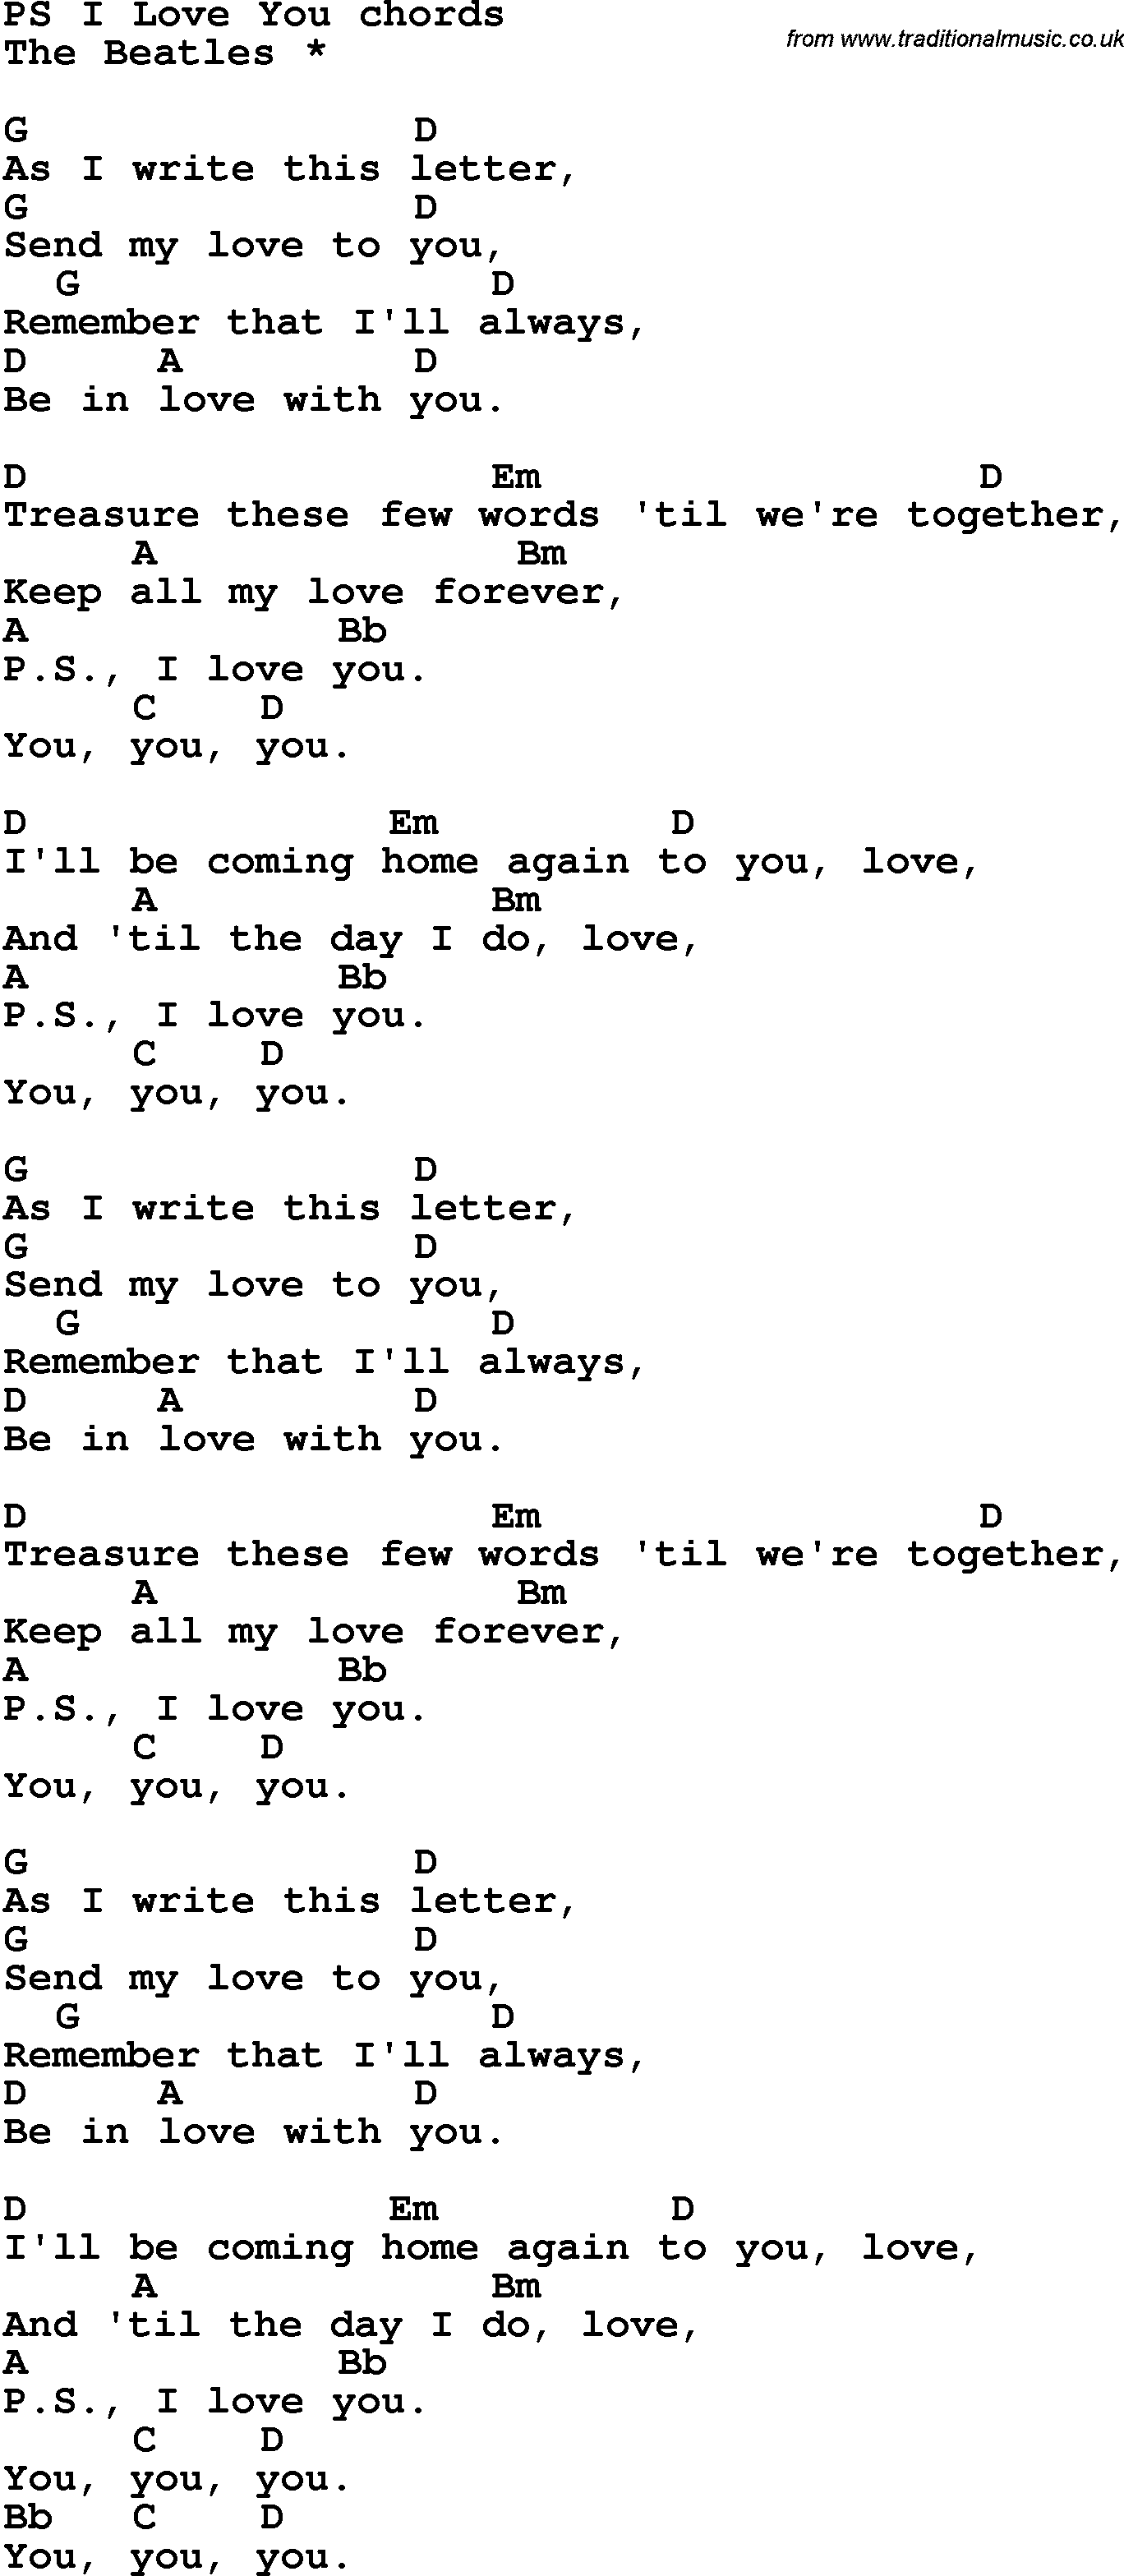 Song Lyrics With Guitar Chords For Ps I Love You The Beatles